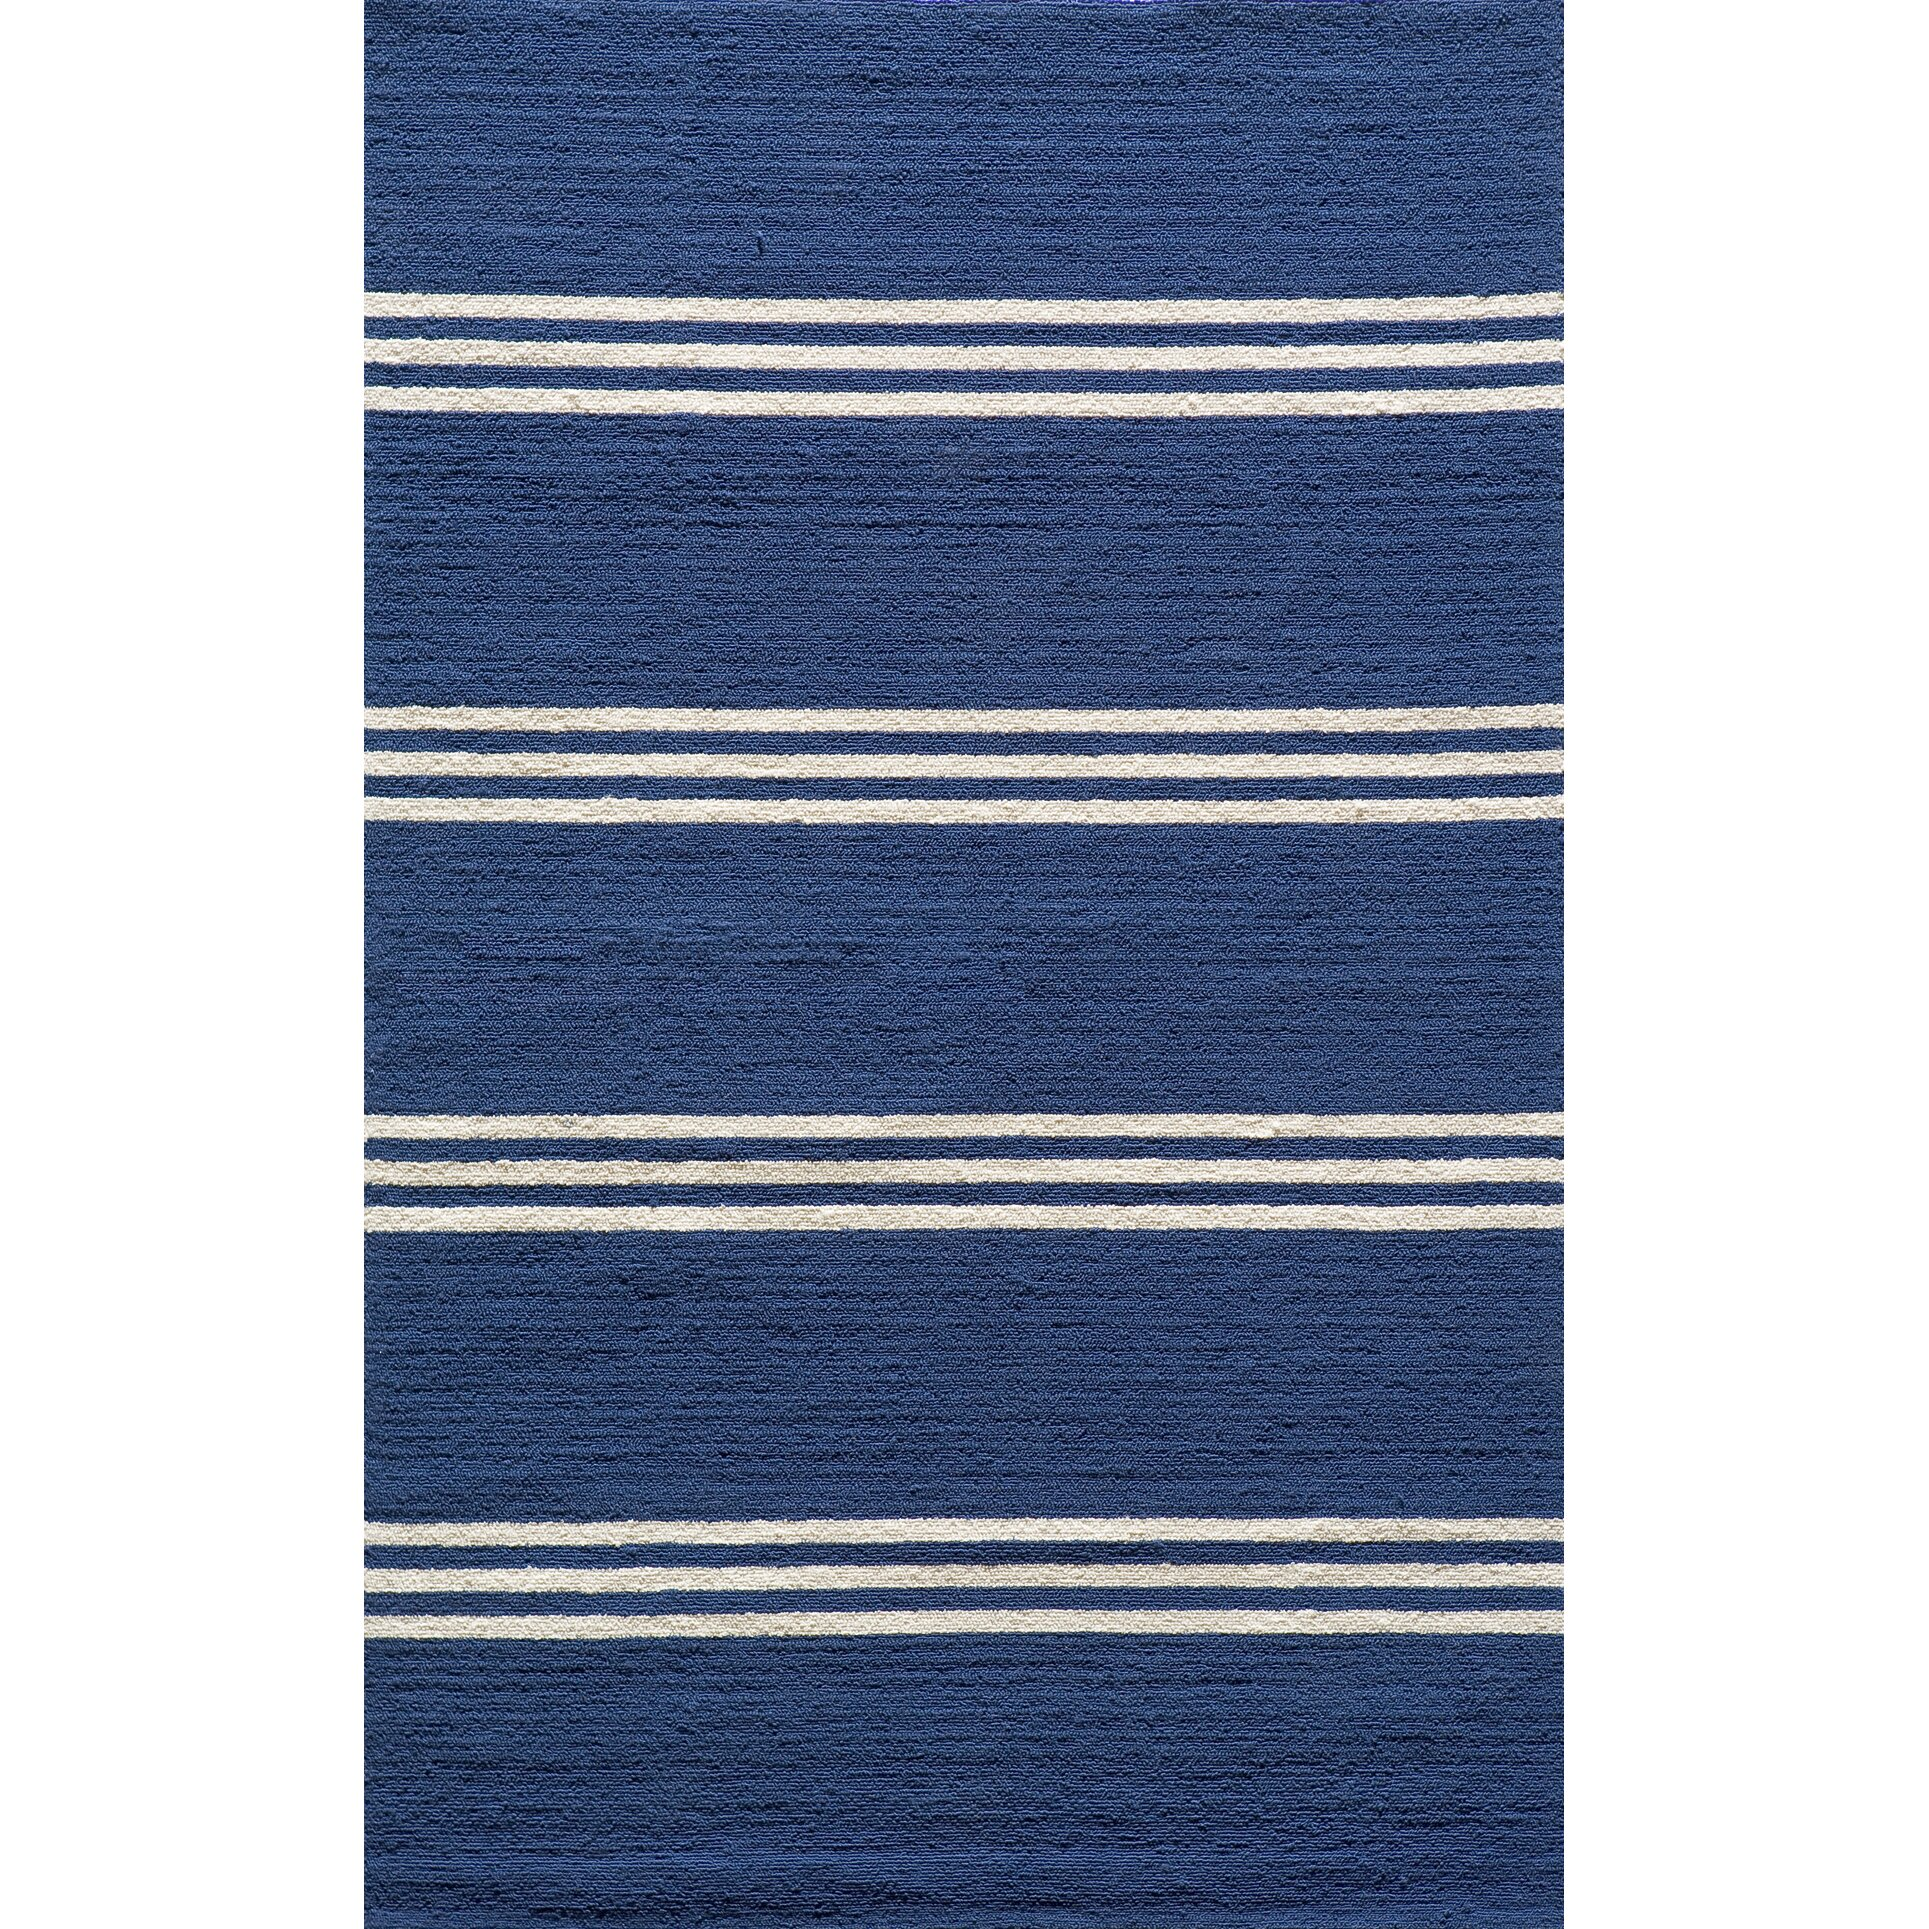 Dreadnought hand hooked blue indoor outdoor area rug for Blue indoor outdoor rug